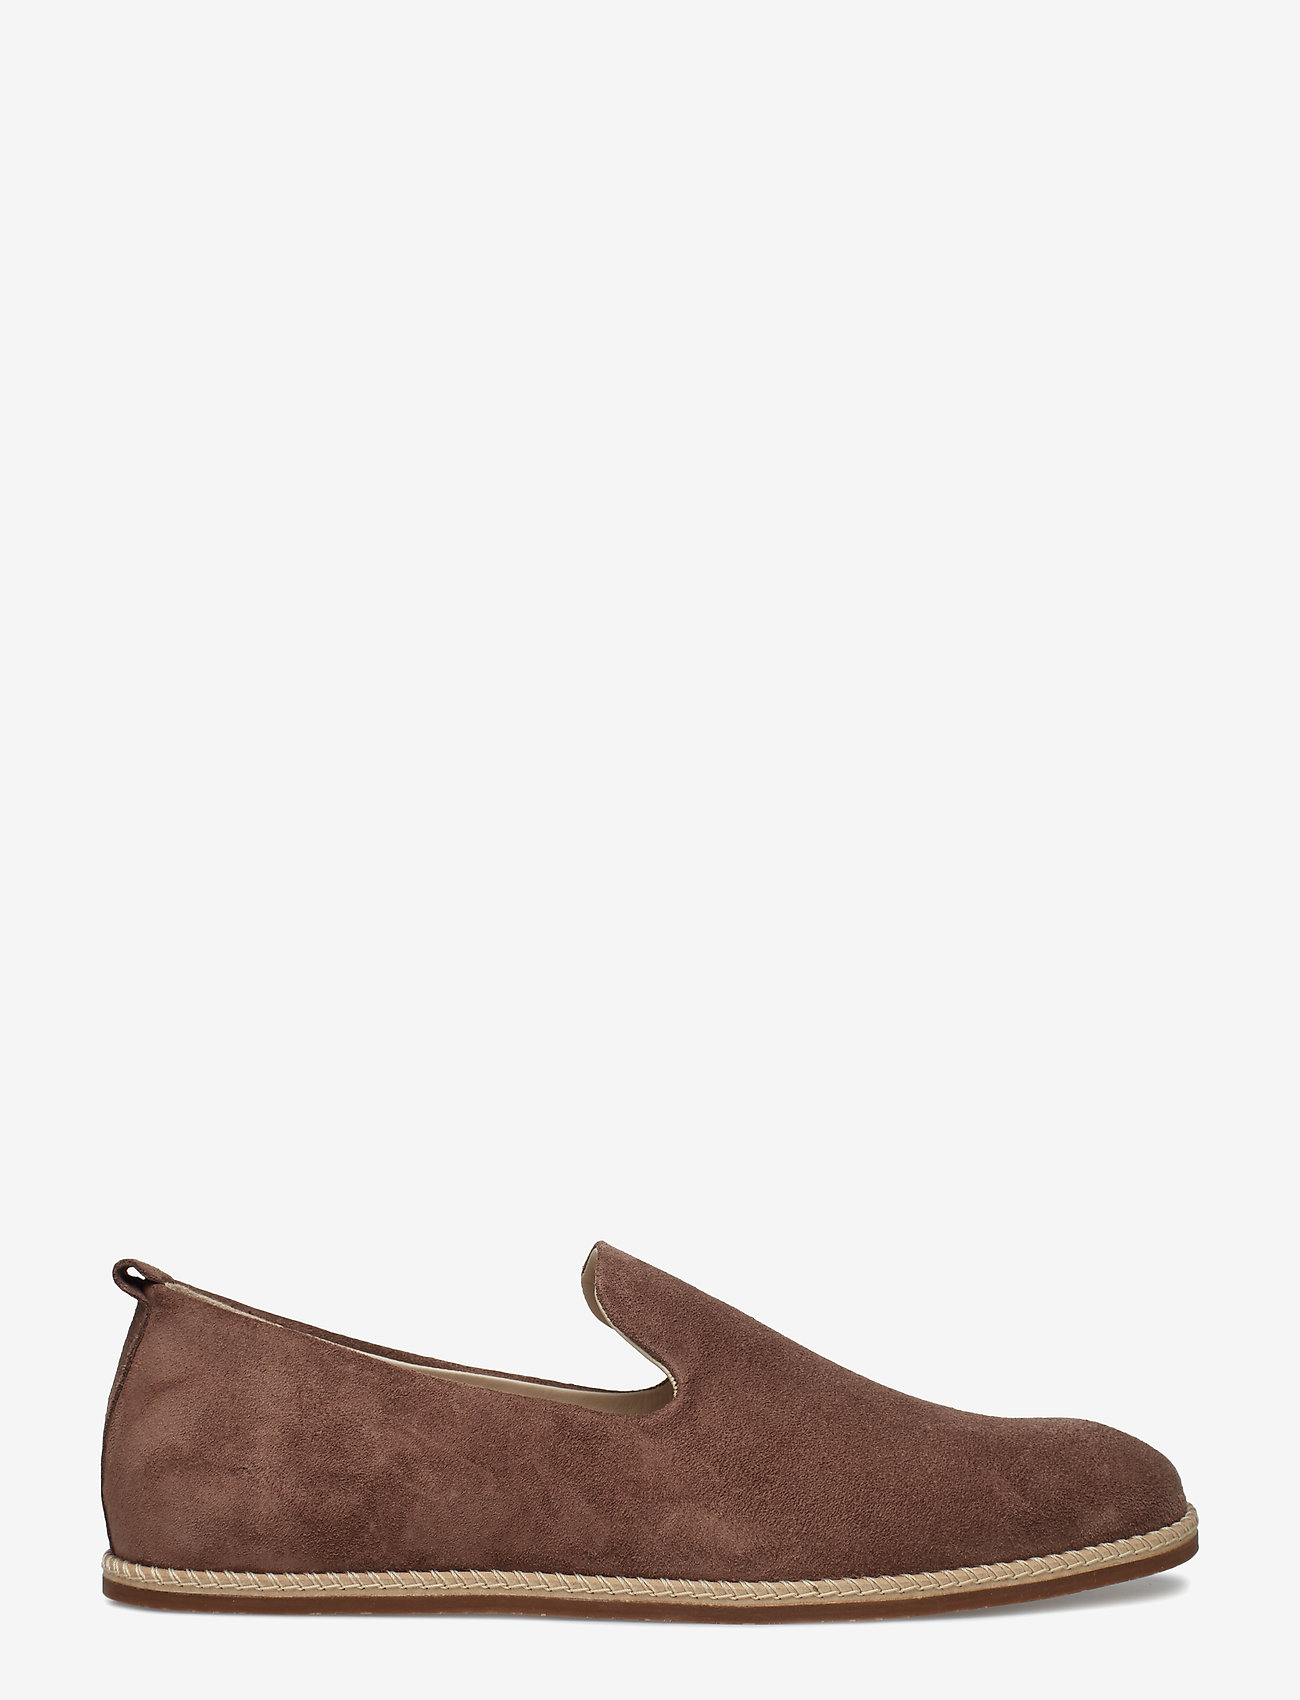 Royal RepubliQ Evo Loafer Suede - Loafers TAUPE - Schuhe Billige